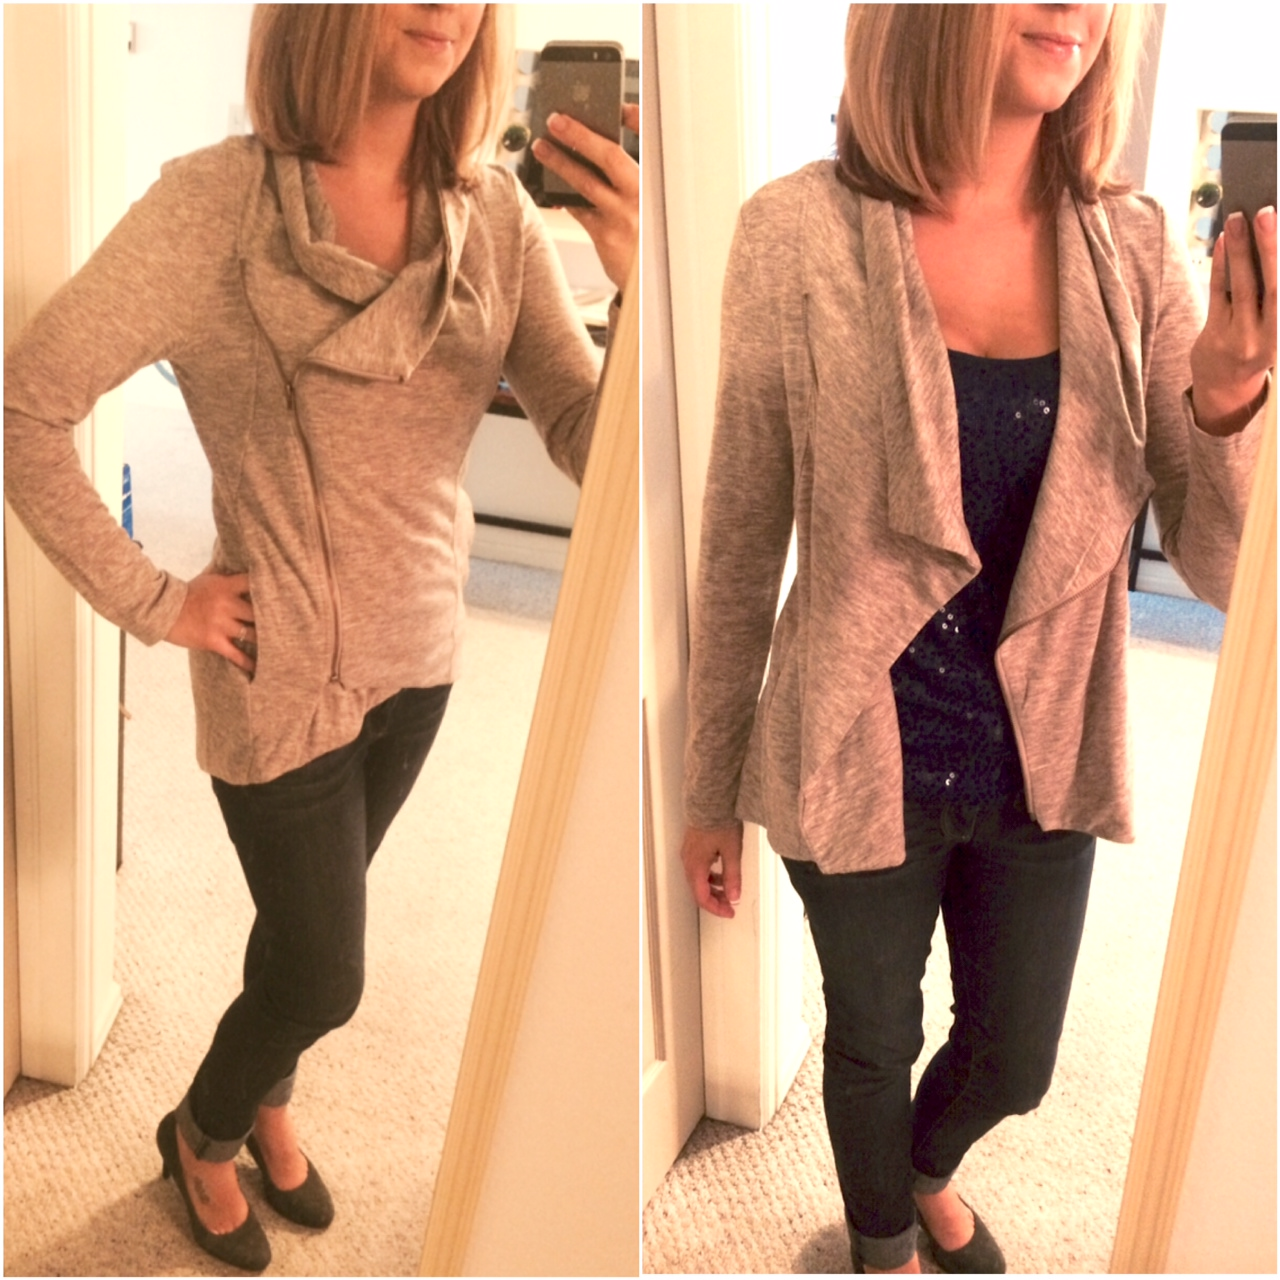 Sweet Rain - Alan Cowl Neck Asymmetrical Jacket - Stitch Fix - Zipped and Unzipped